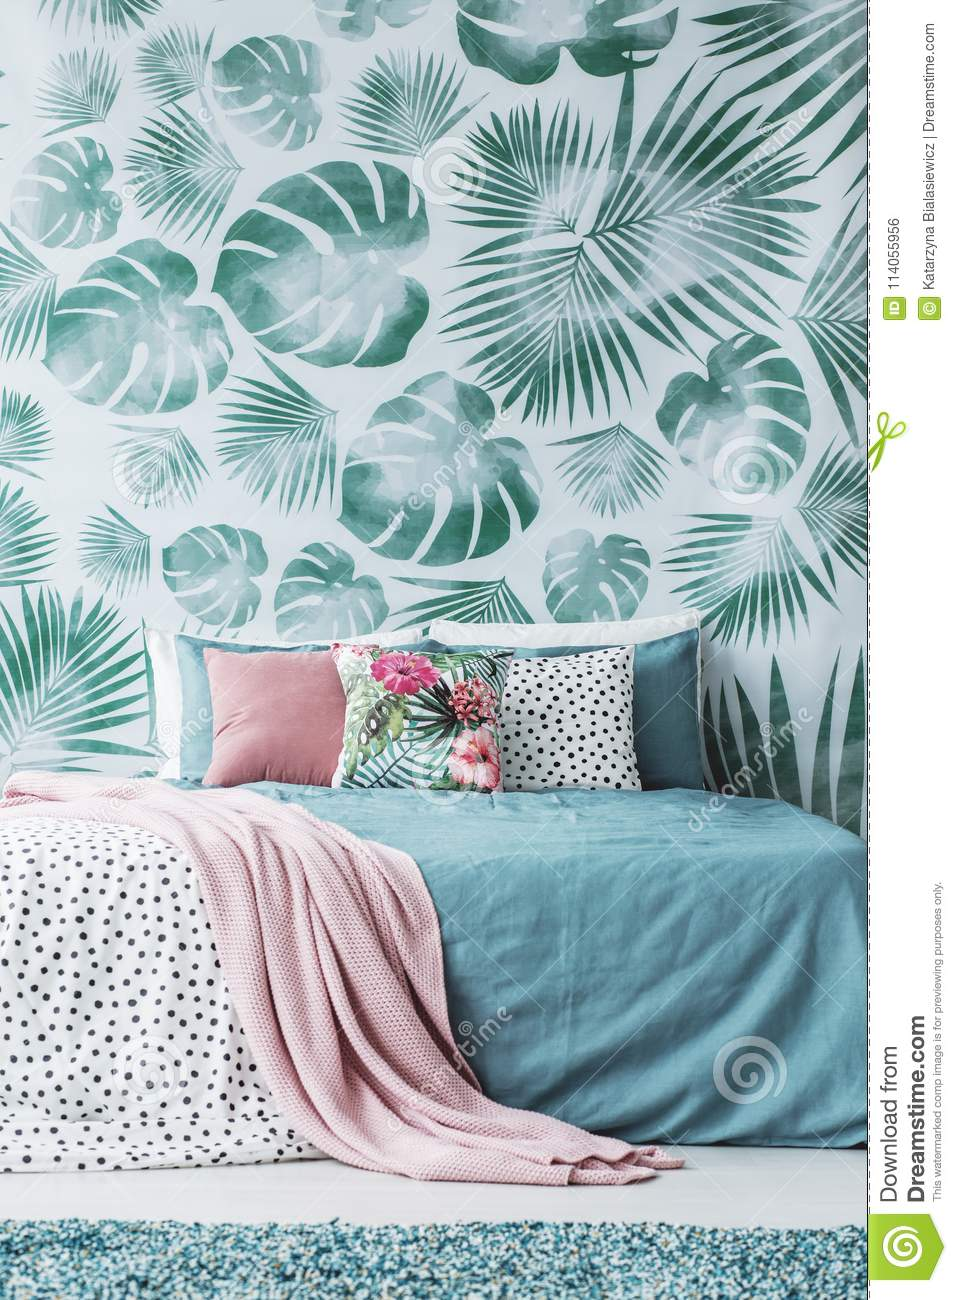 Turquoise Bed By Leaves Wallpaper Stock Photo - Image of green ...